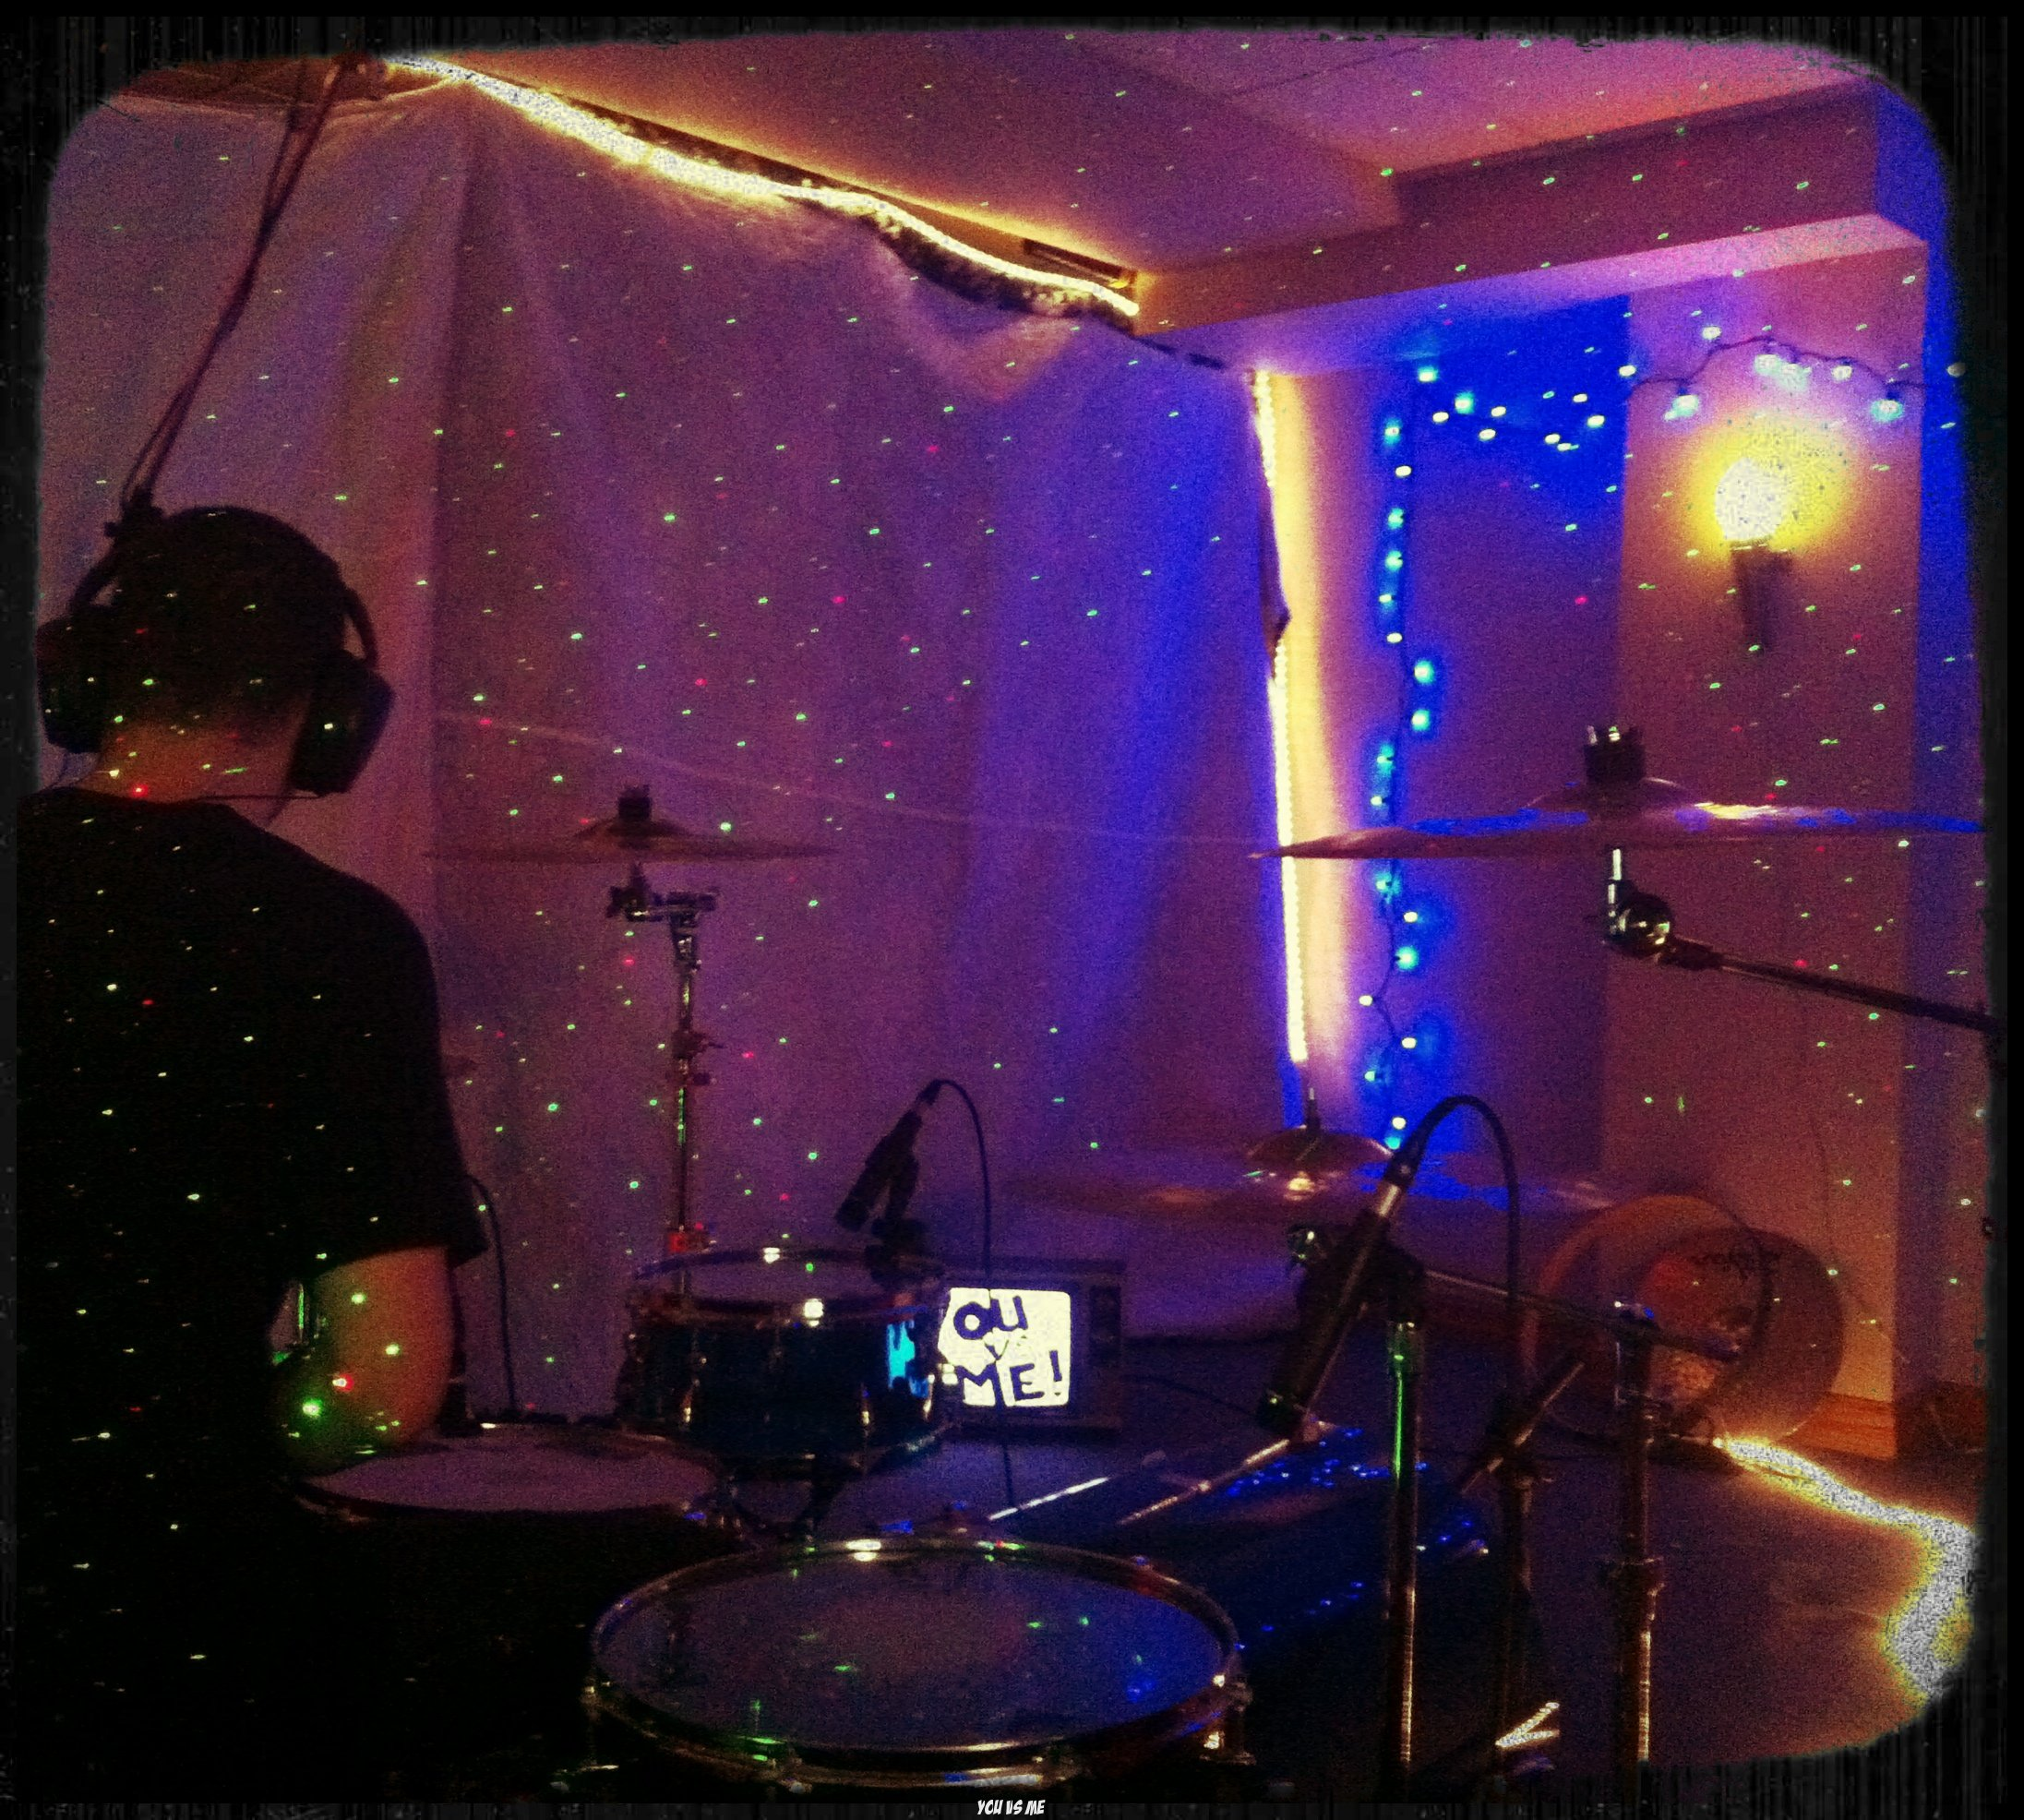 Day 4 - More Drums Please